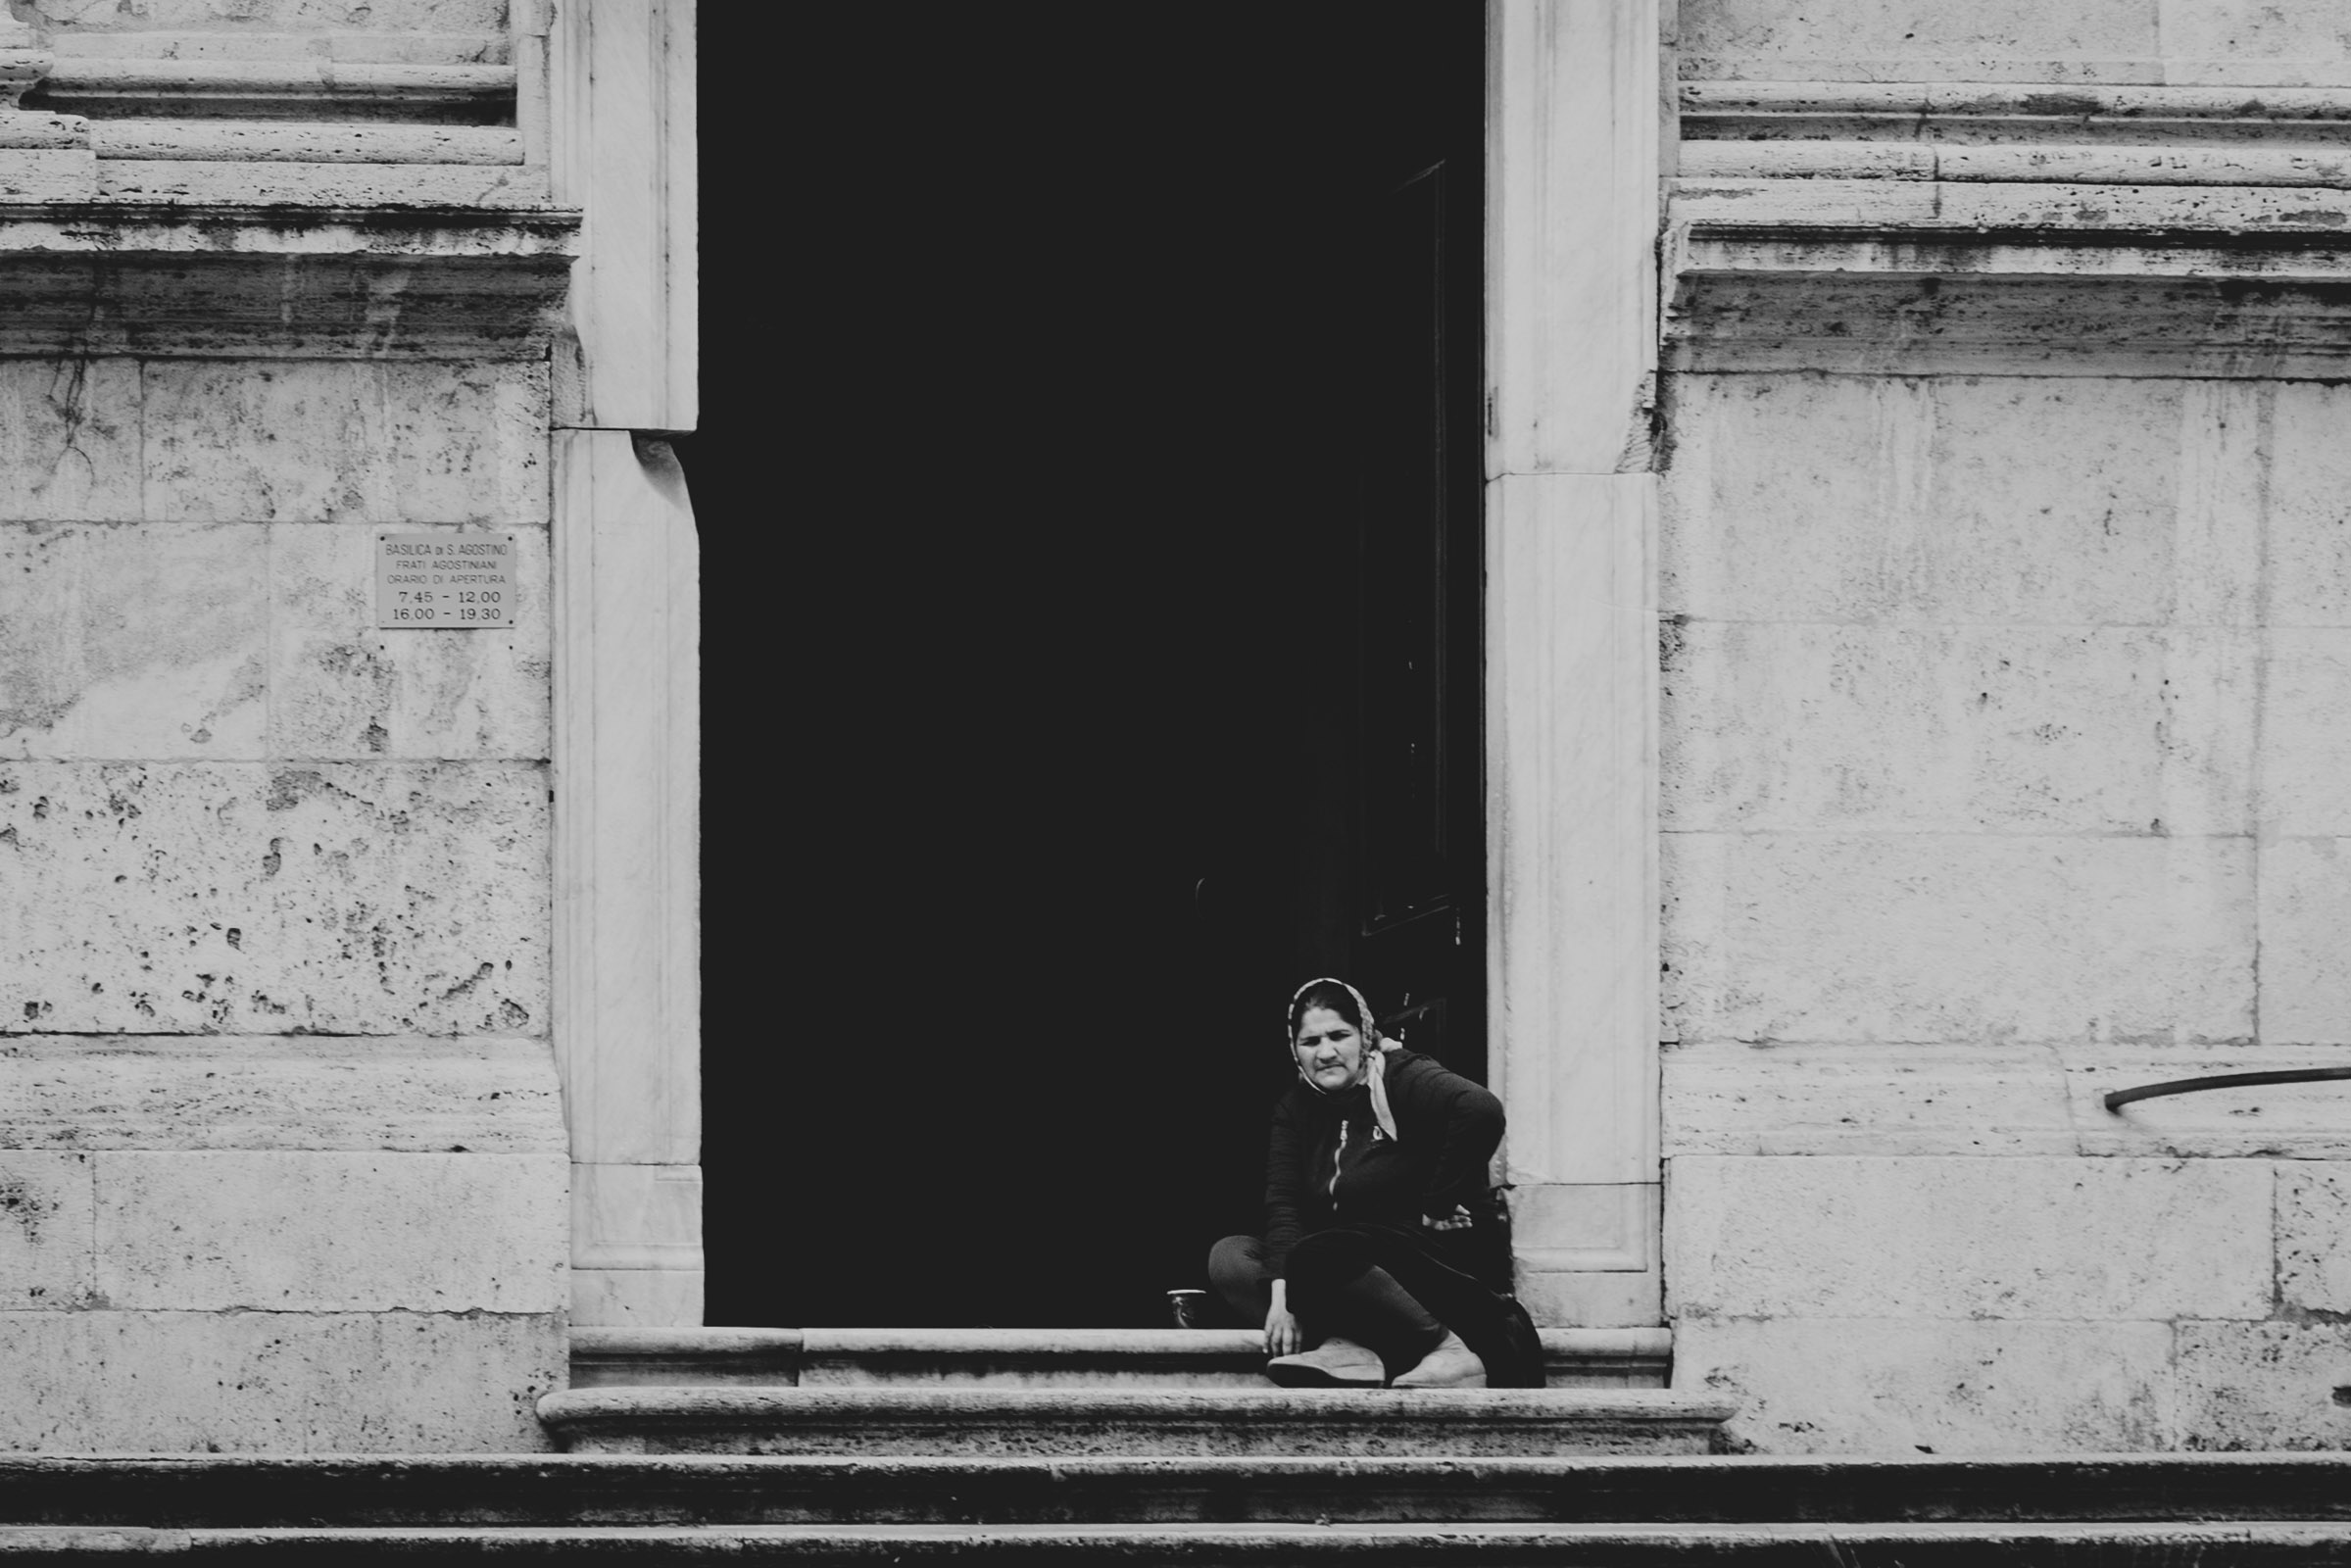 ABOVE:A woman begging on the steps of a church.